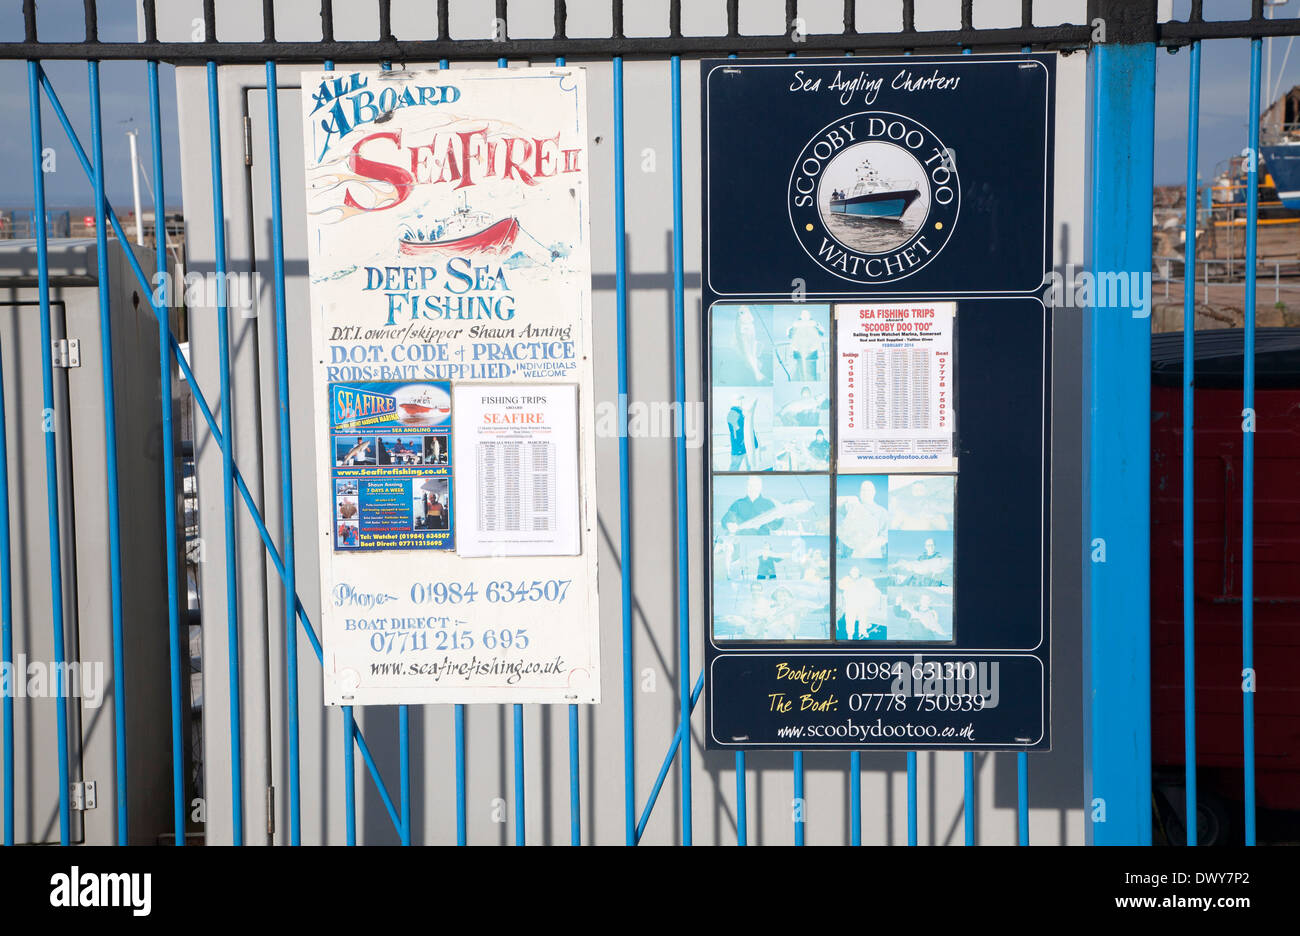 Signs for deep sea fishing trips at Watchet, Somerset, England - Stock Image